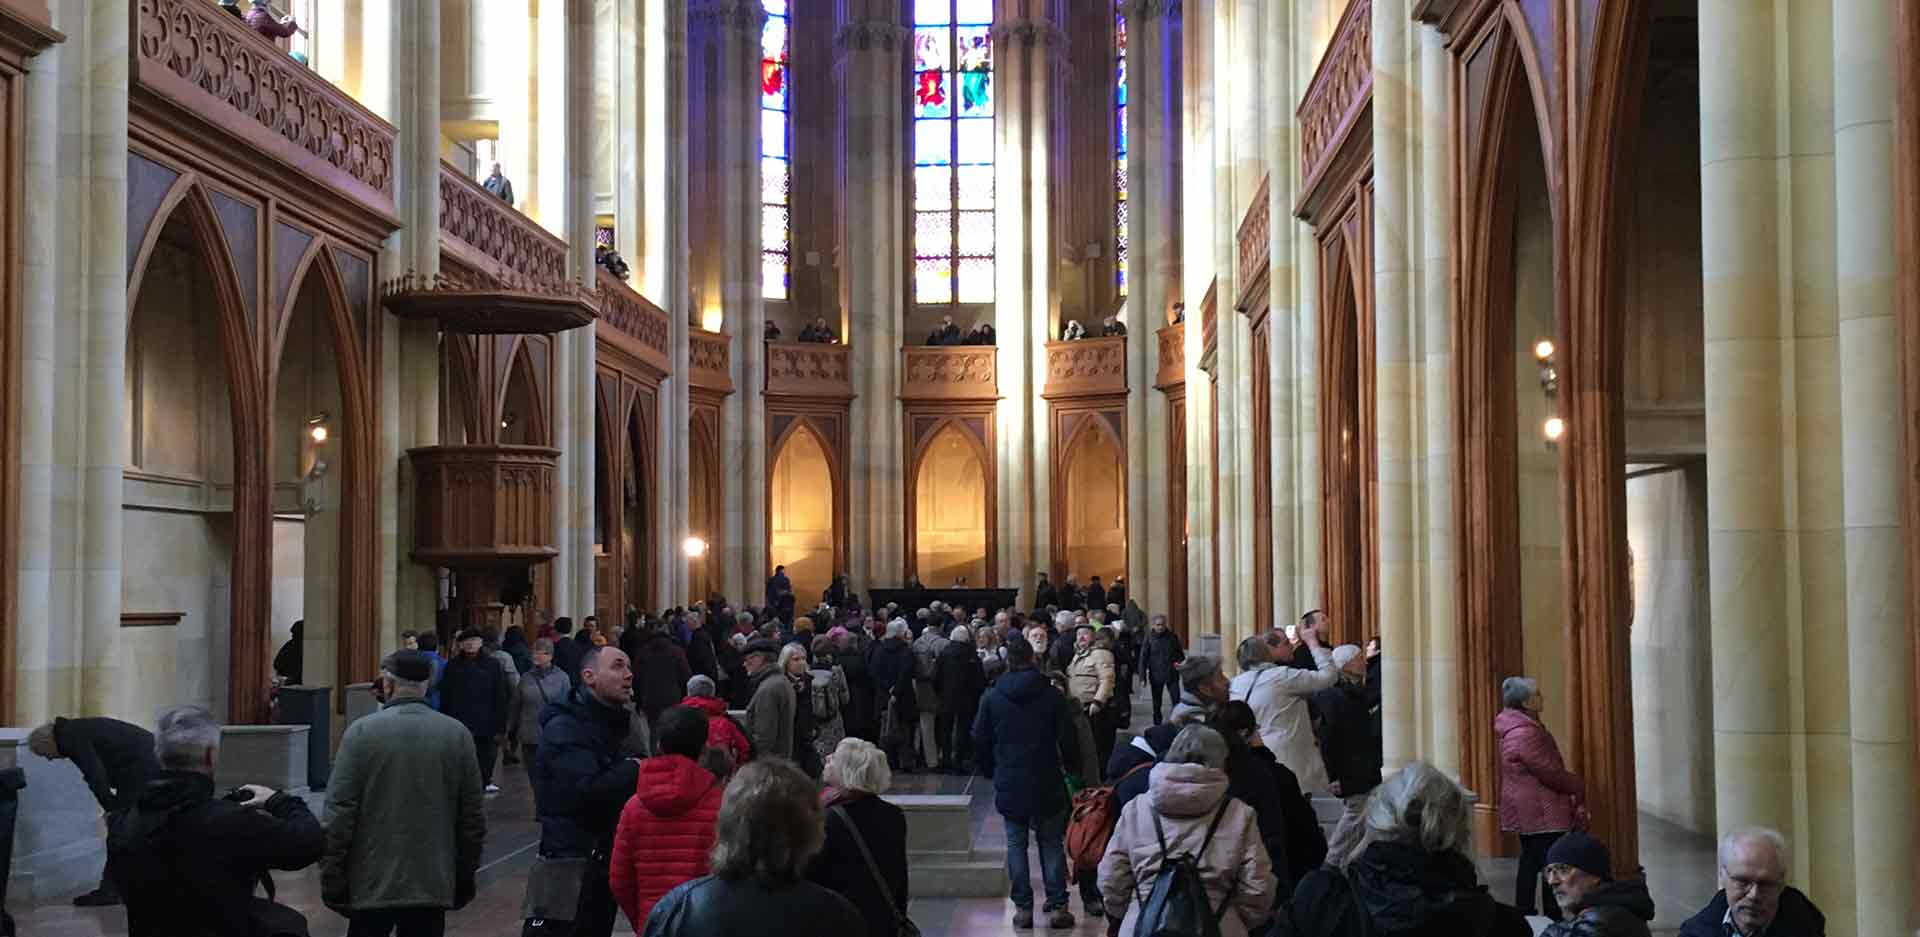 Open Weekend in the Friedrichswerdersche Kirche on 18 and 19 January 2020